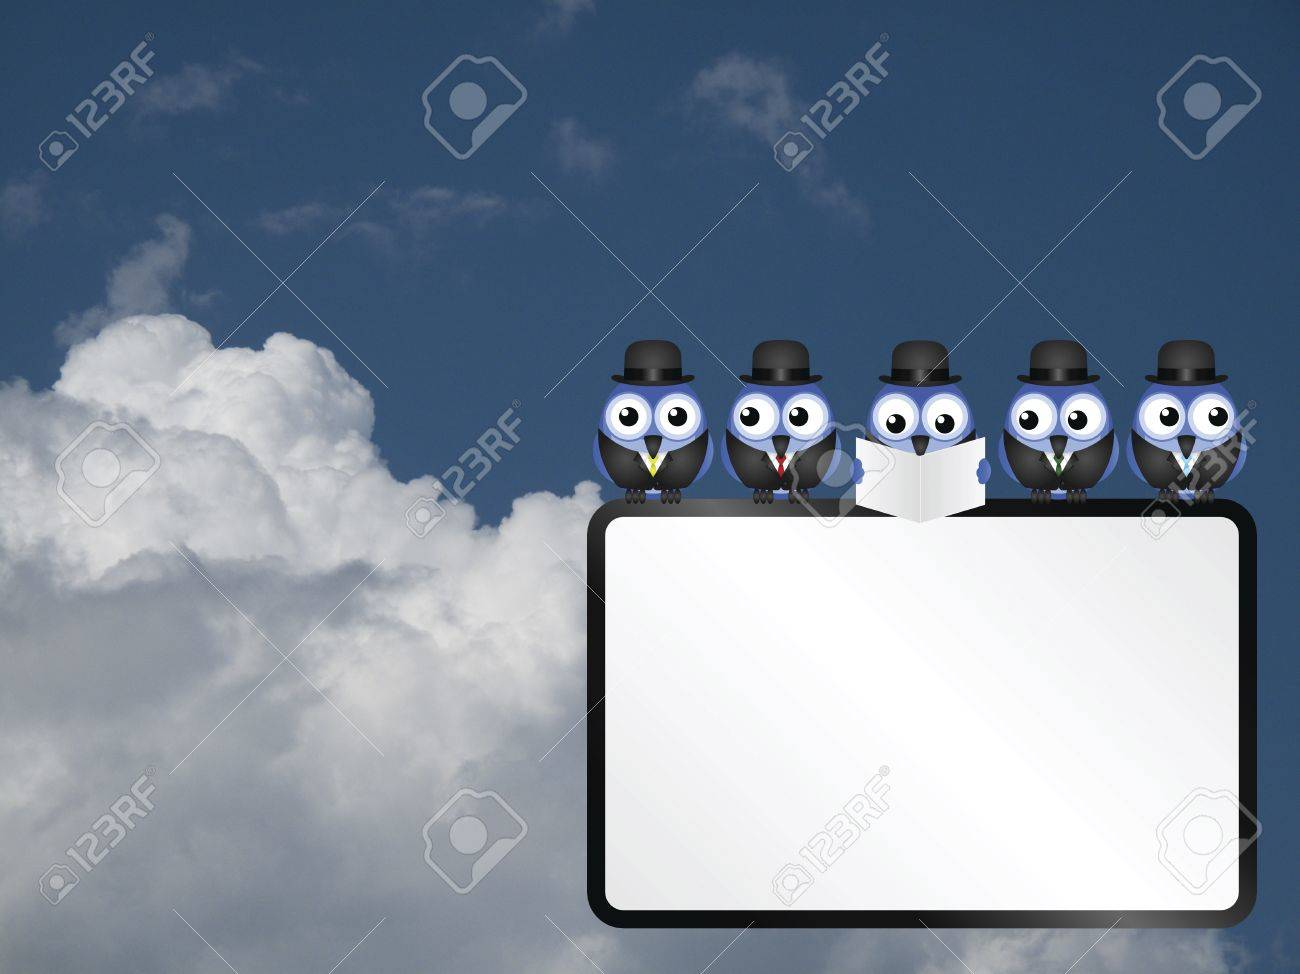 blank business sign with copy space for own text against a cloudy